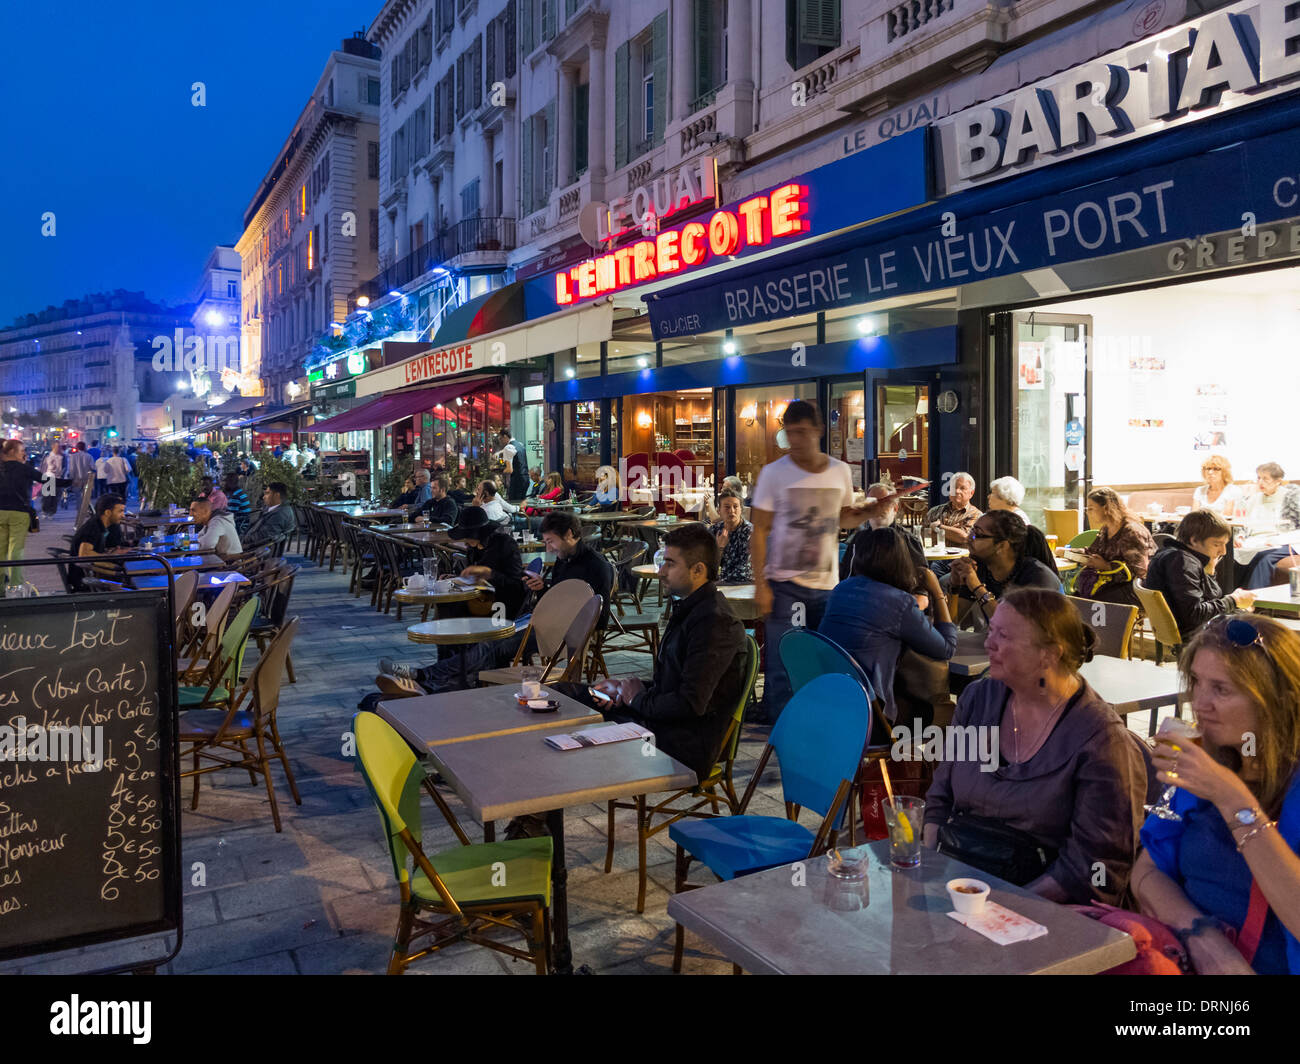 Cafe in the vieux port terra vecchia bastia corsica france stock -  Marseille France People At Busy Pavement Cafe Bars Next To The Old Port In